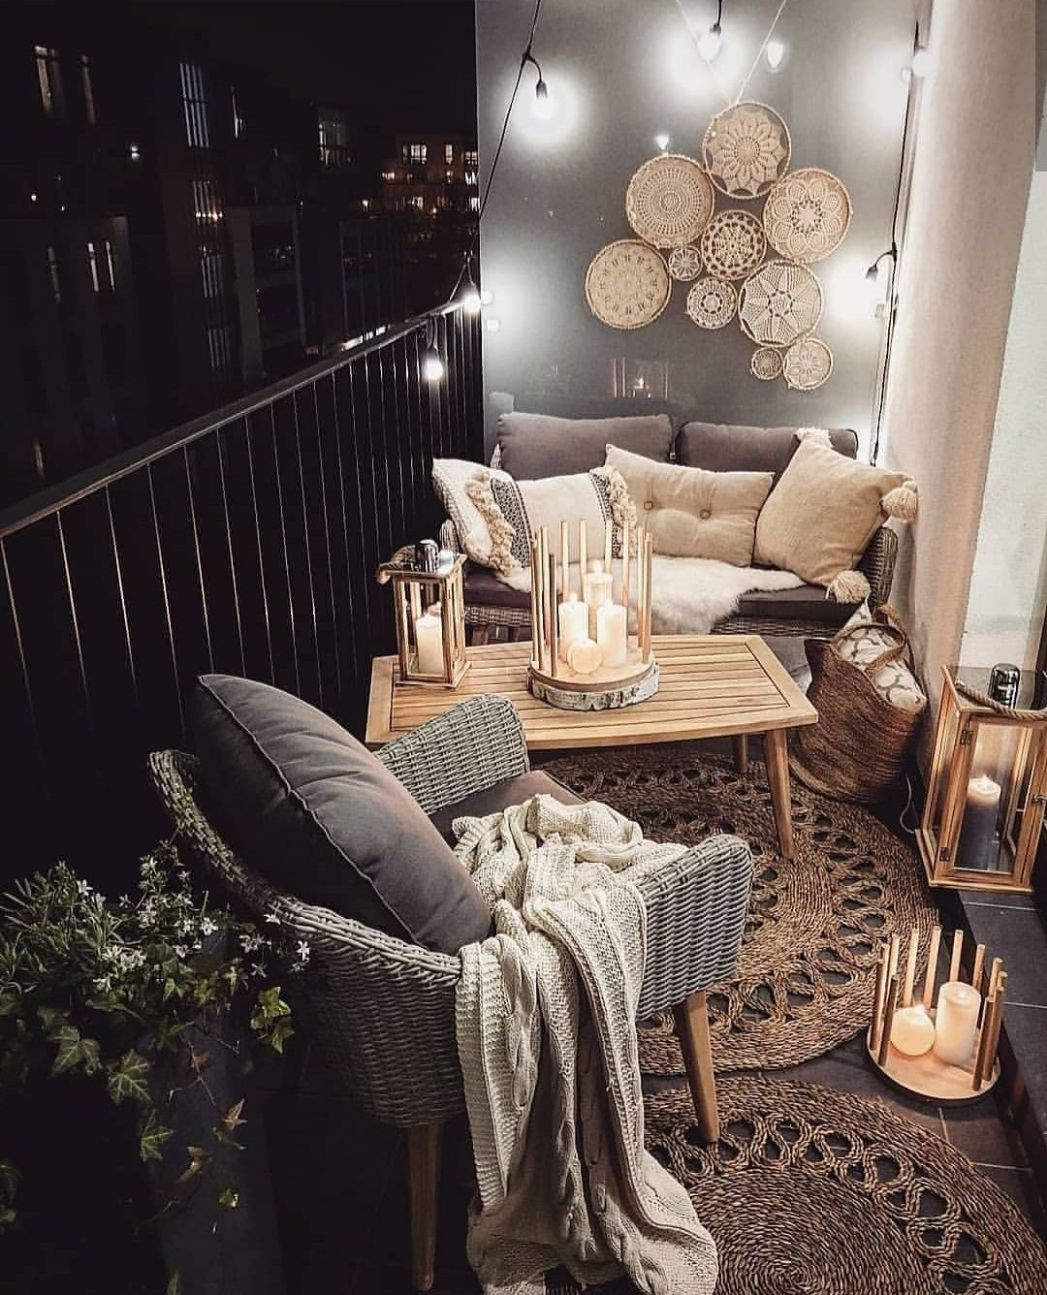 The Best Decorated Small Outdoor Balconies on Pinterest (With ...